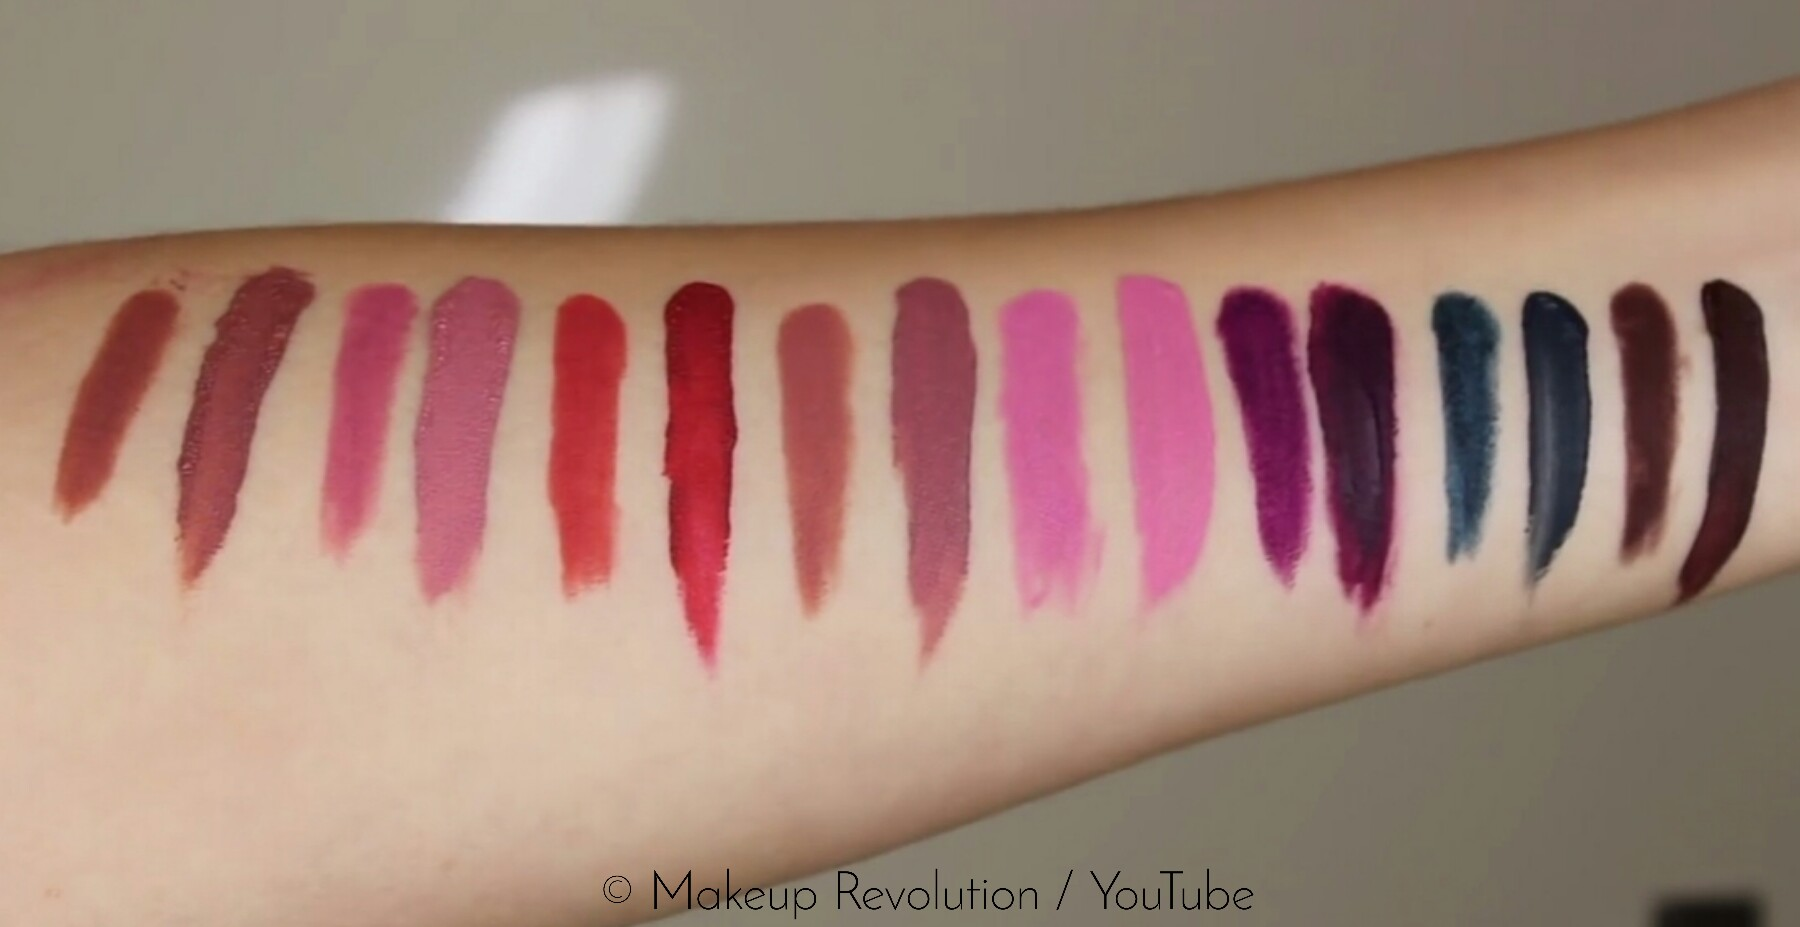 Makeup Revolution Retro Luxe Kits Matte Swatches